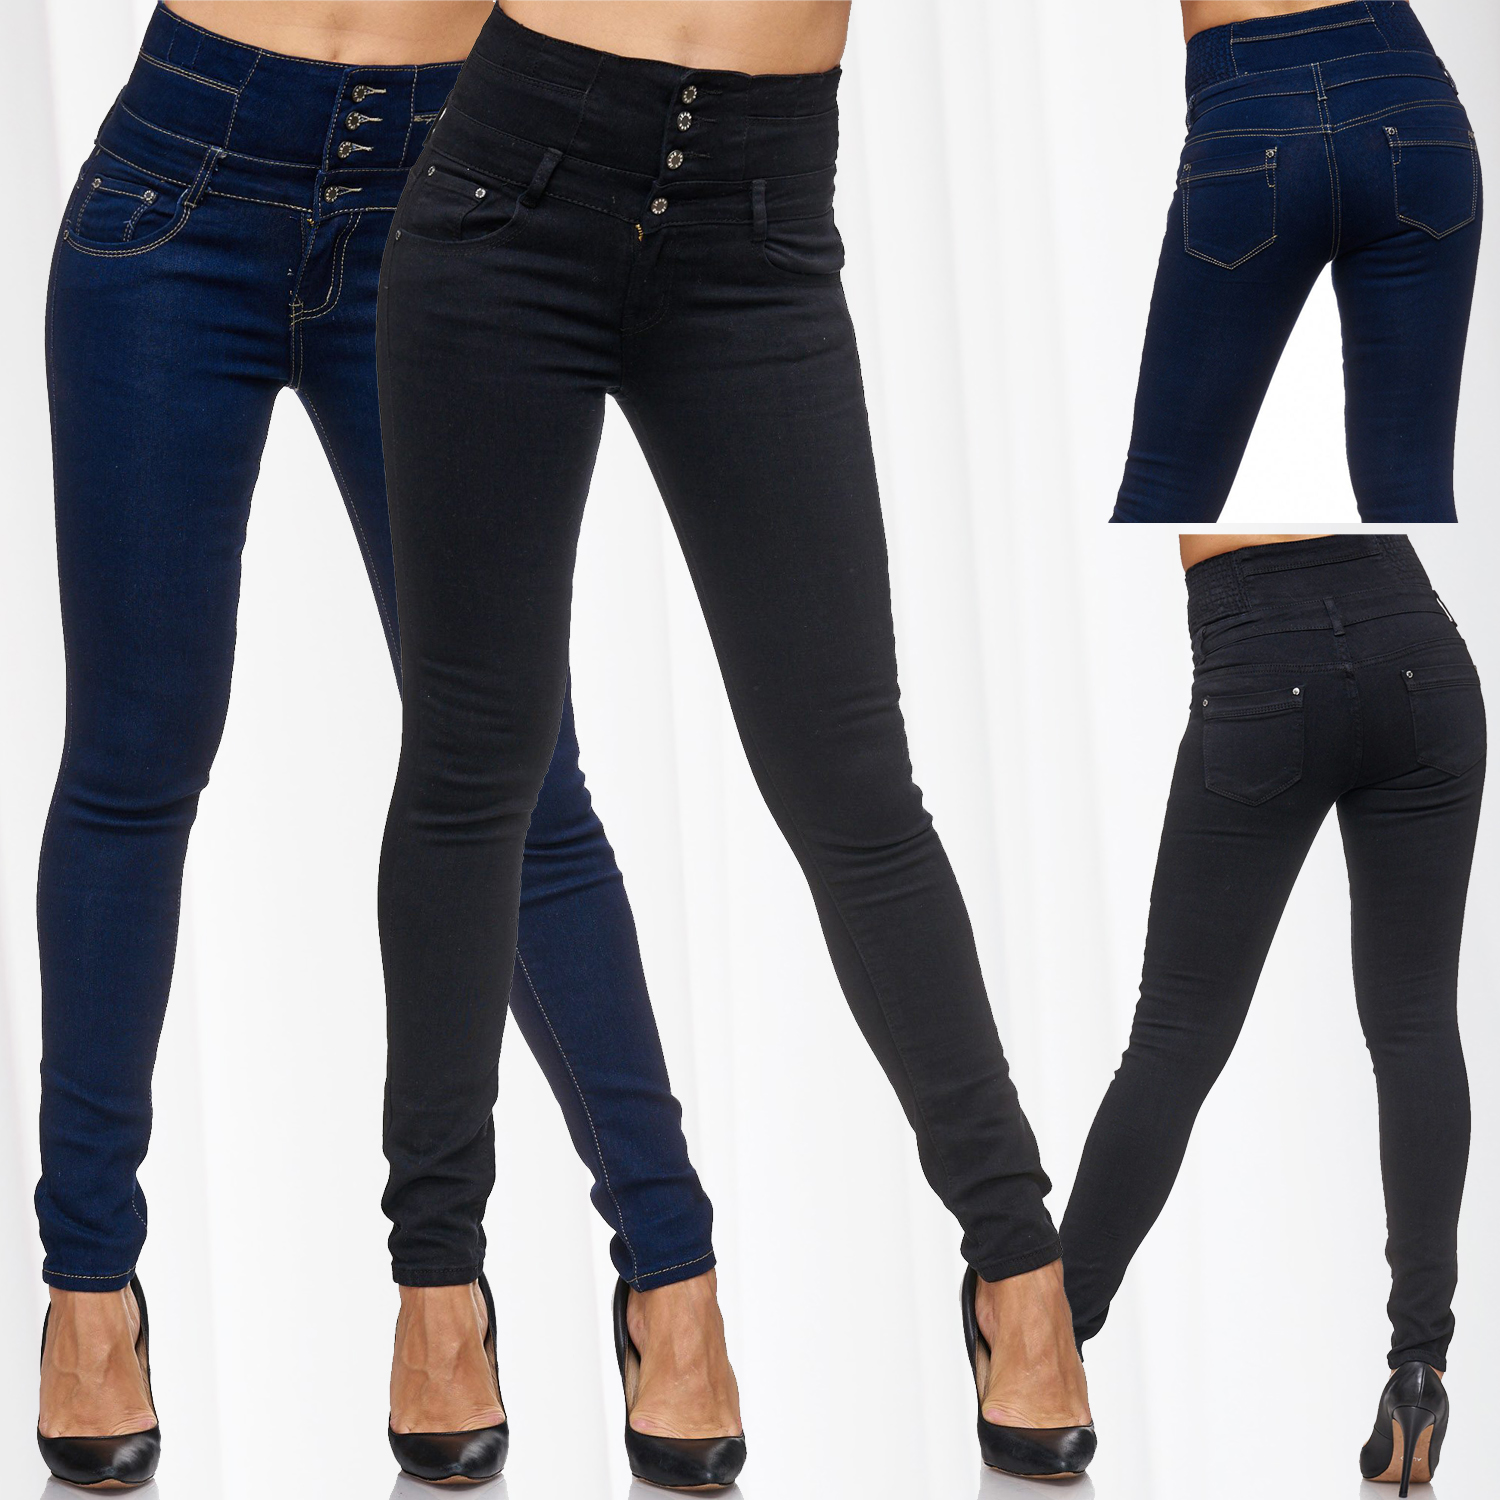 damen high waist jeans hose jeggings stretch skinny r hre treggings hoher bund ebay. Black Bedroom Furniture Sets. Home Design Ideas